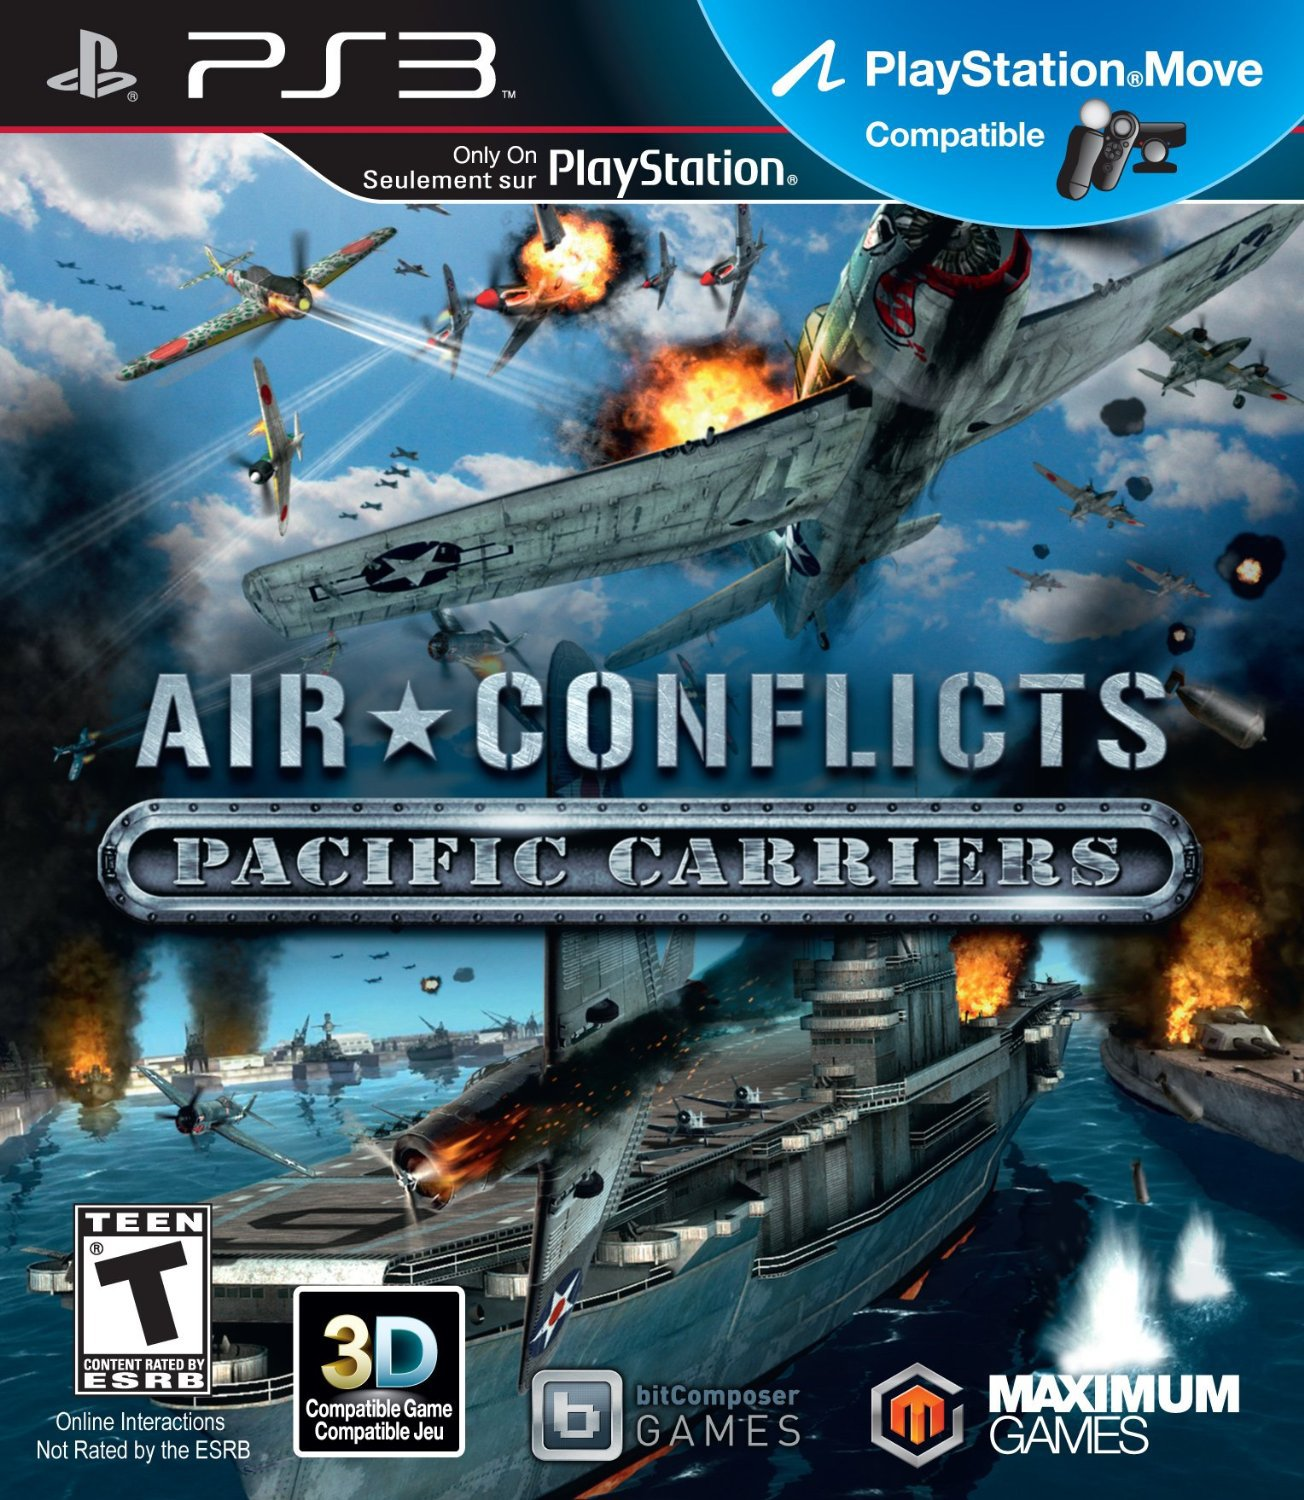 Air Conflicts: Pacific Carrier